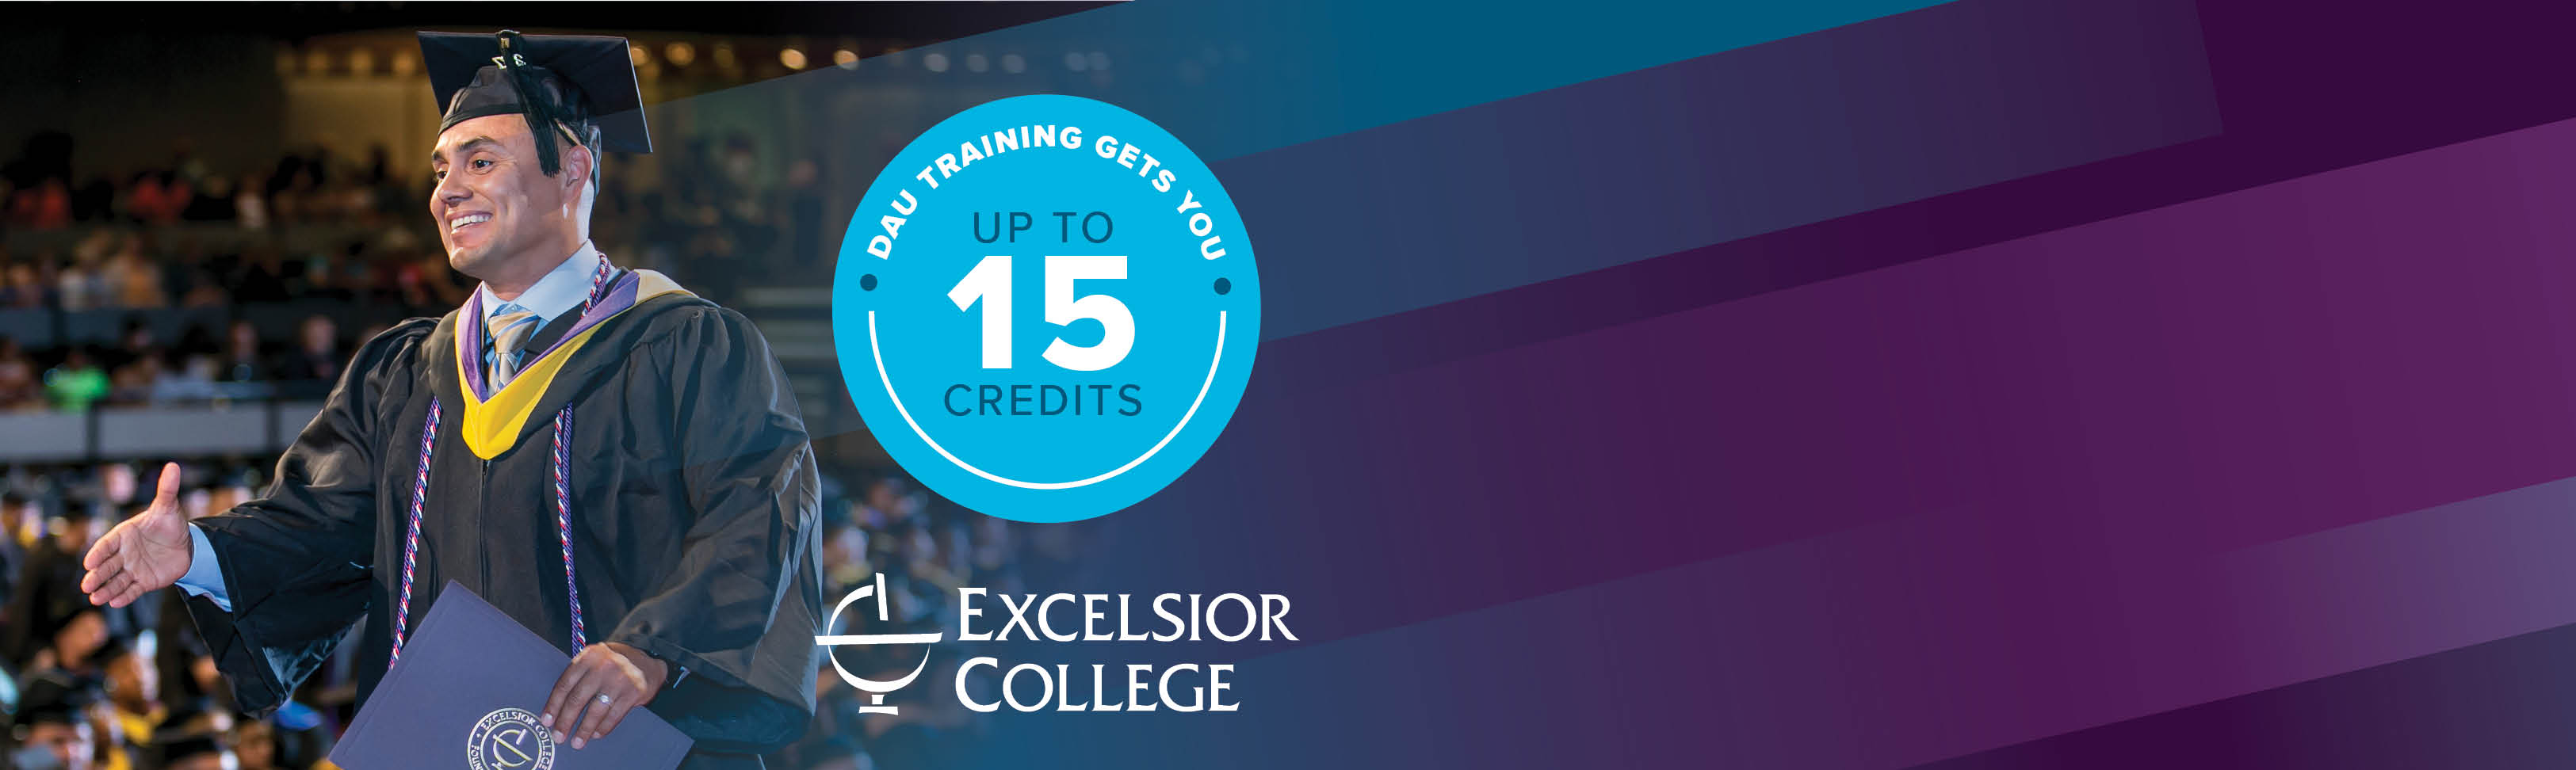 https://www.dau.mil/partnerships/blog/Excelsior-College-gives-credit-where-credits-due